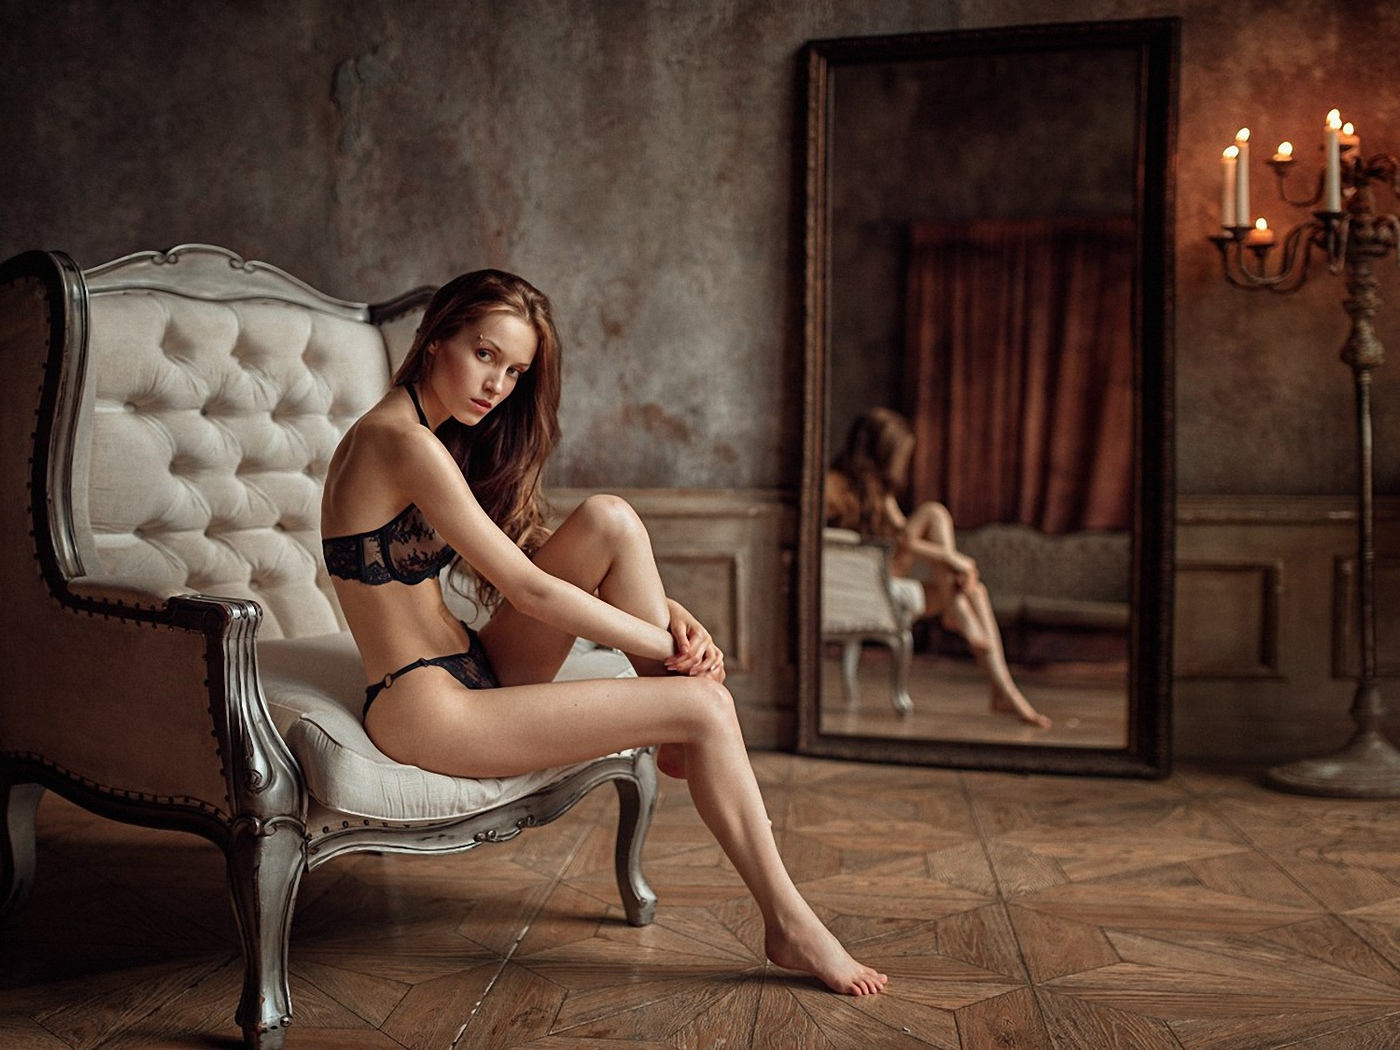 Nude photography workshop in london